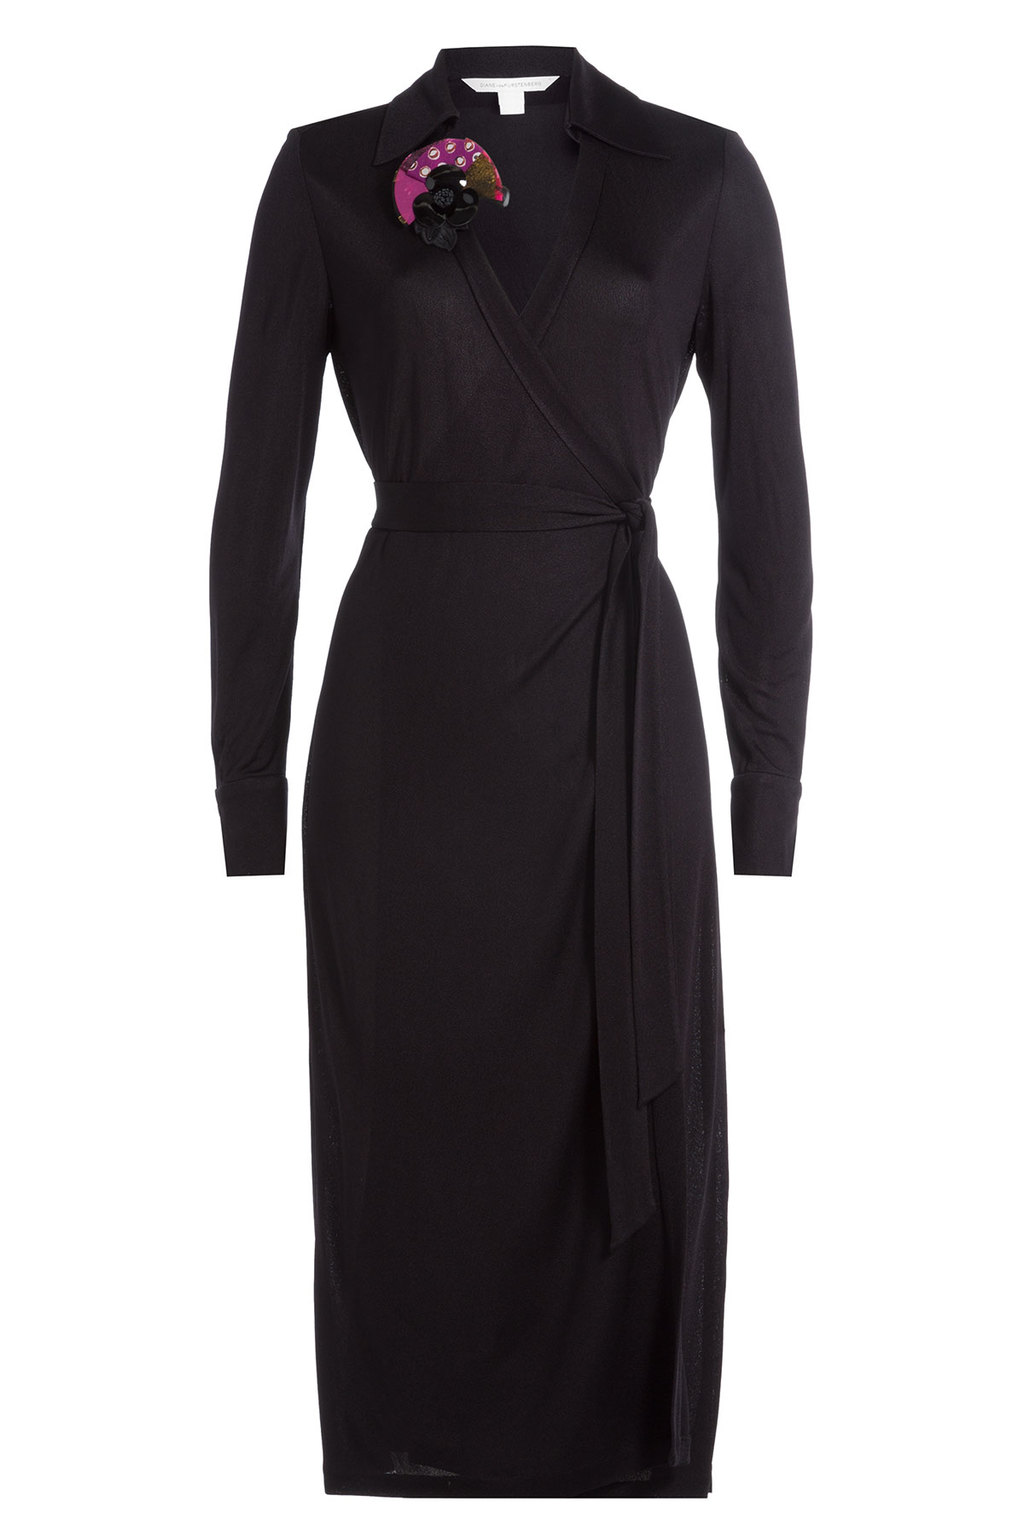 Wrap Dress With Printed Corsage Black - style: faux wrap/wrap; length: below the knee; neckline: shirt collar/peter pan/zip with opening; pattern: plain; waist detail: belted waist/tie at waist/drawstring; predominant colour: black; occasions: evening; fit: body skimming; fibres: viscose/rayon - 100%; sleeve length: long sleeve; sleeve style: standard; pattern type: fabric; texture group: jersey - stretchy/drapey; season: a/w 2016